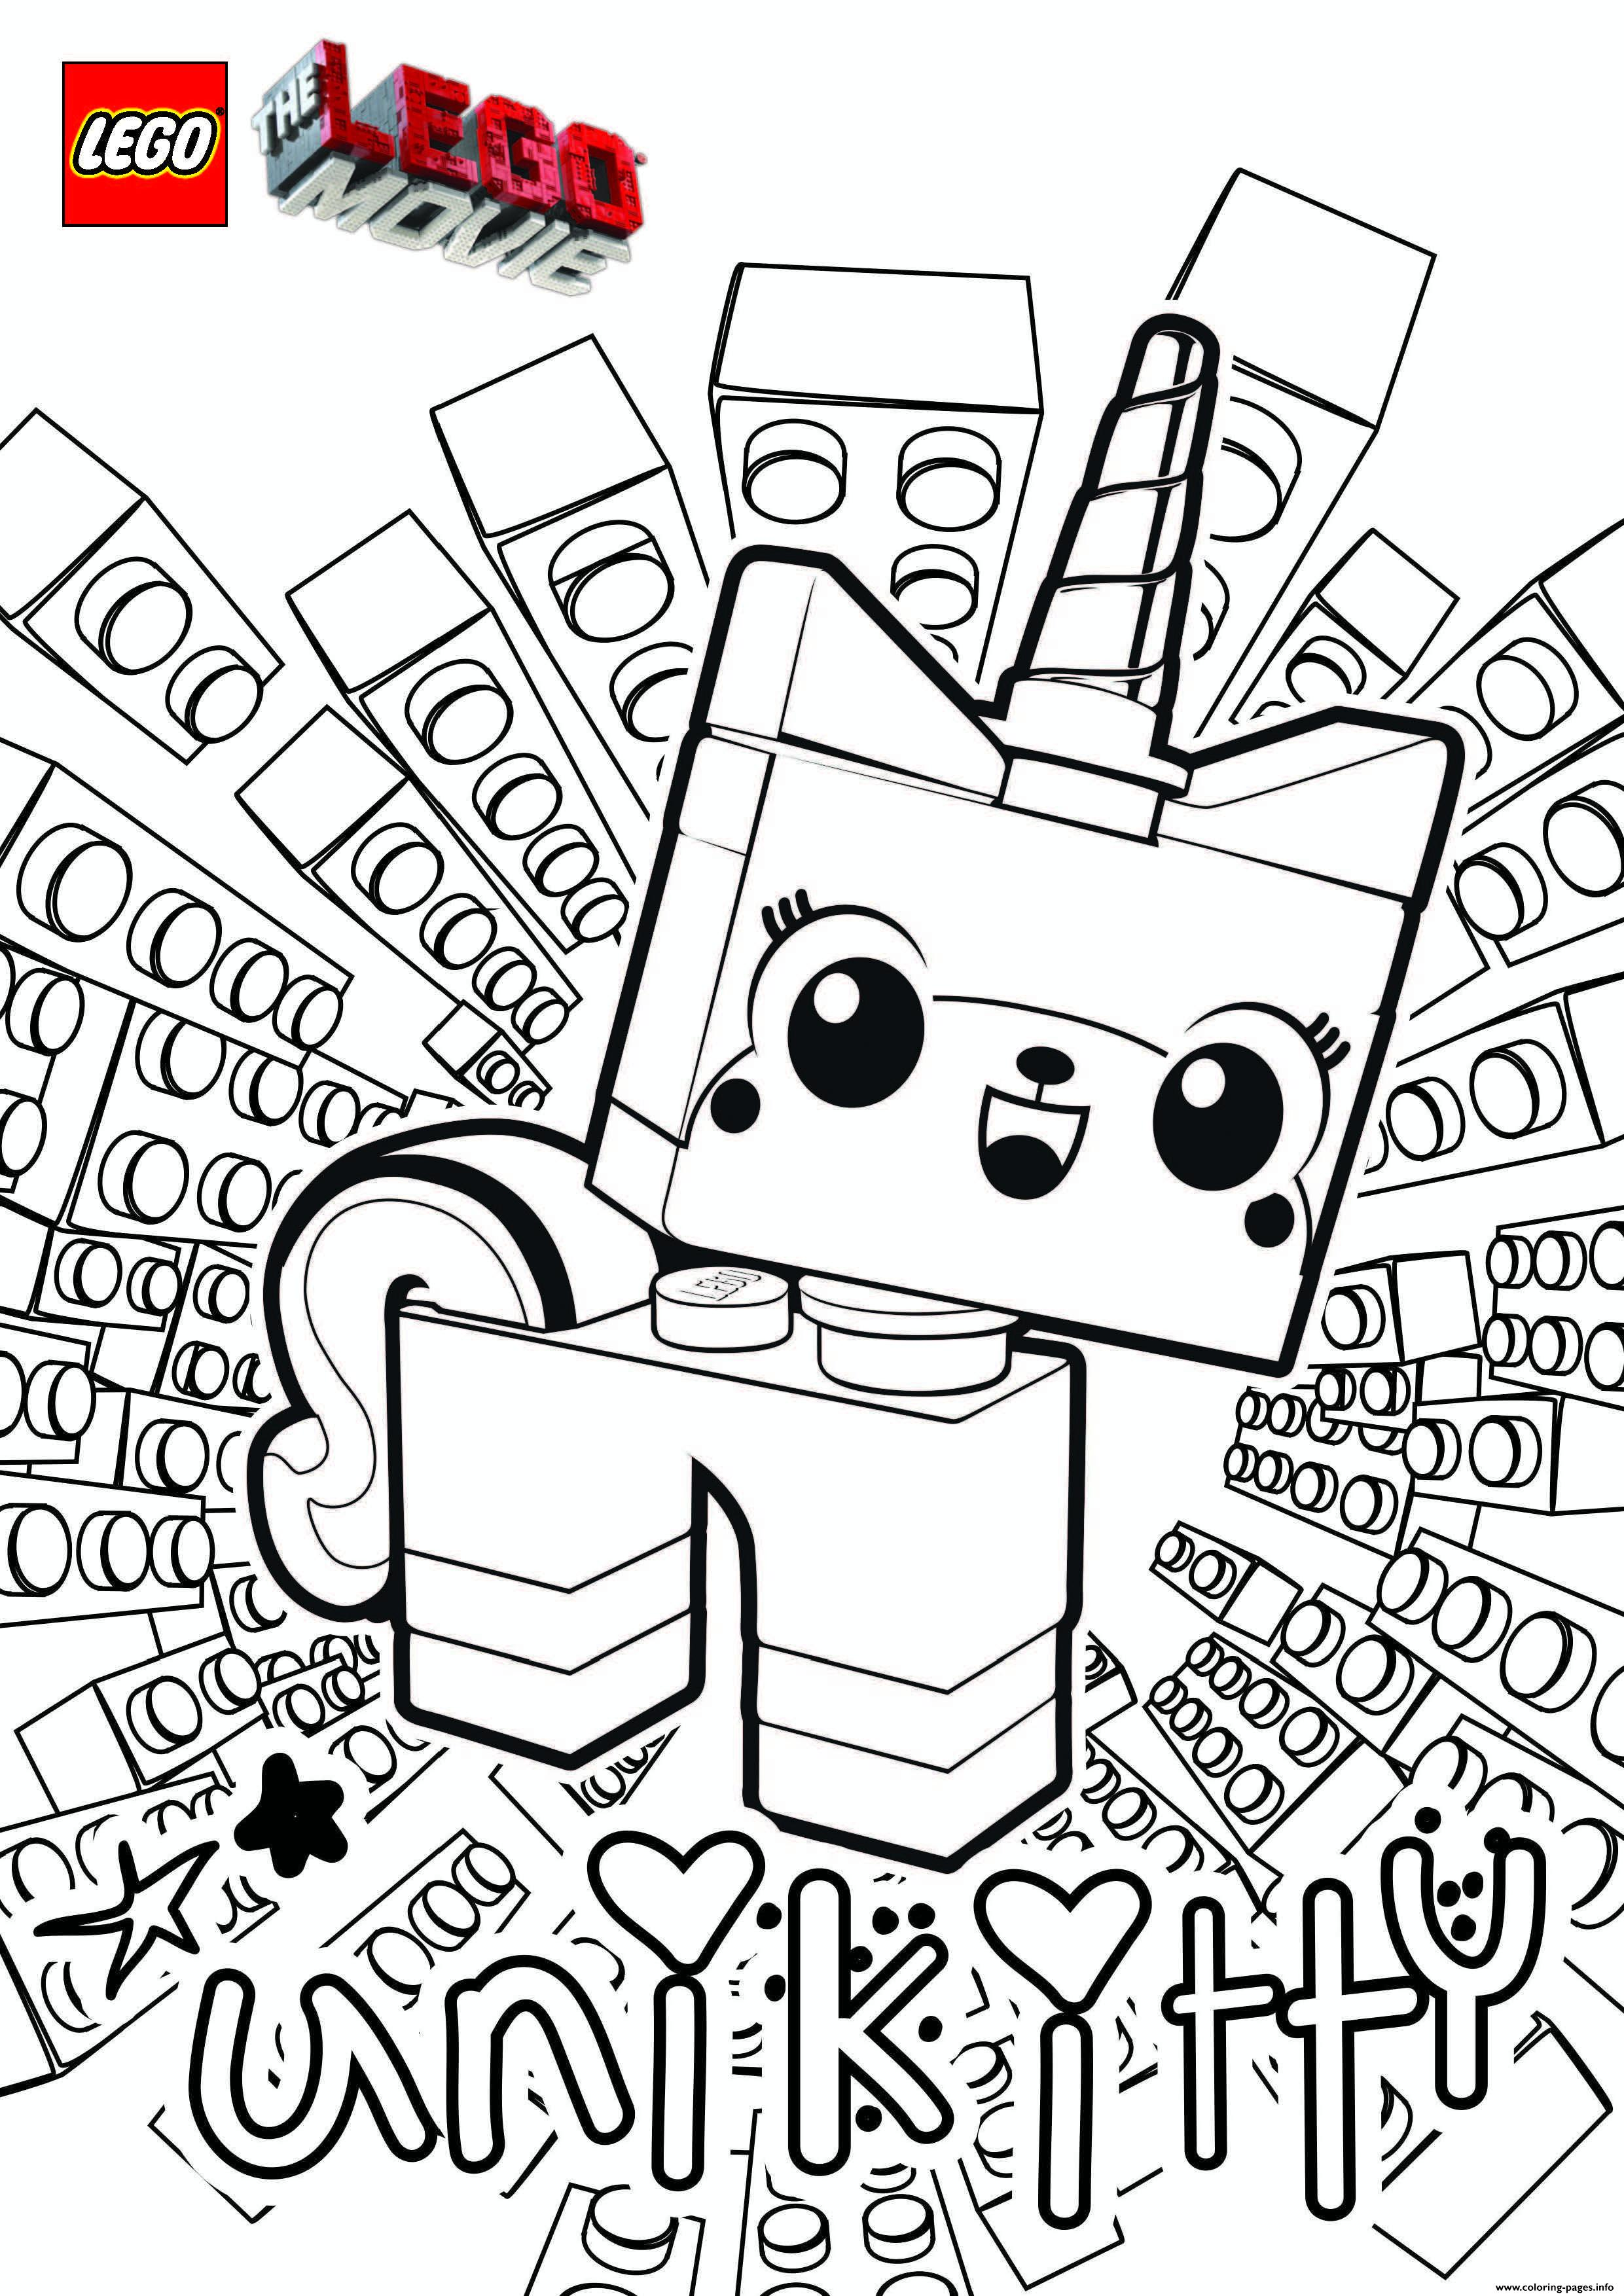 Unicorn Unikitty Lego Movie Coloring Pages Printable